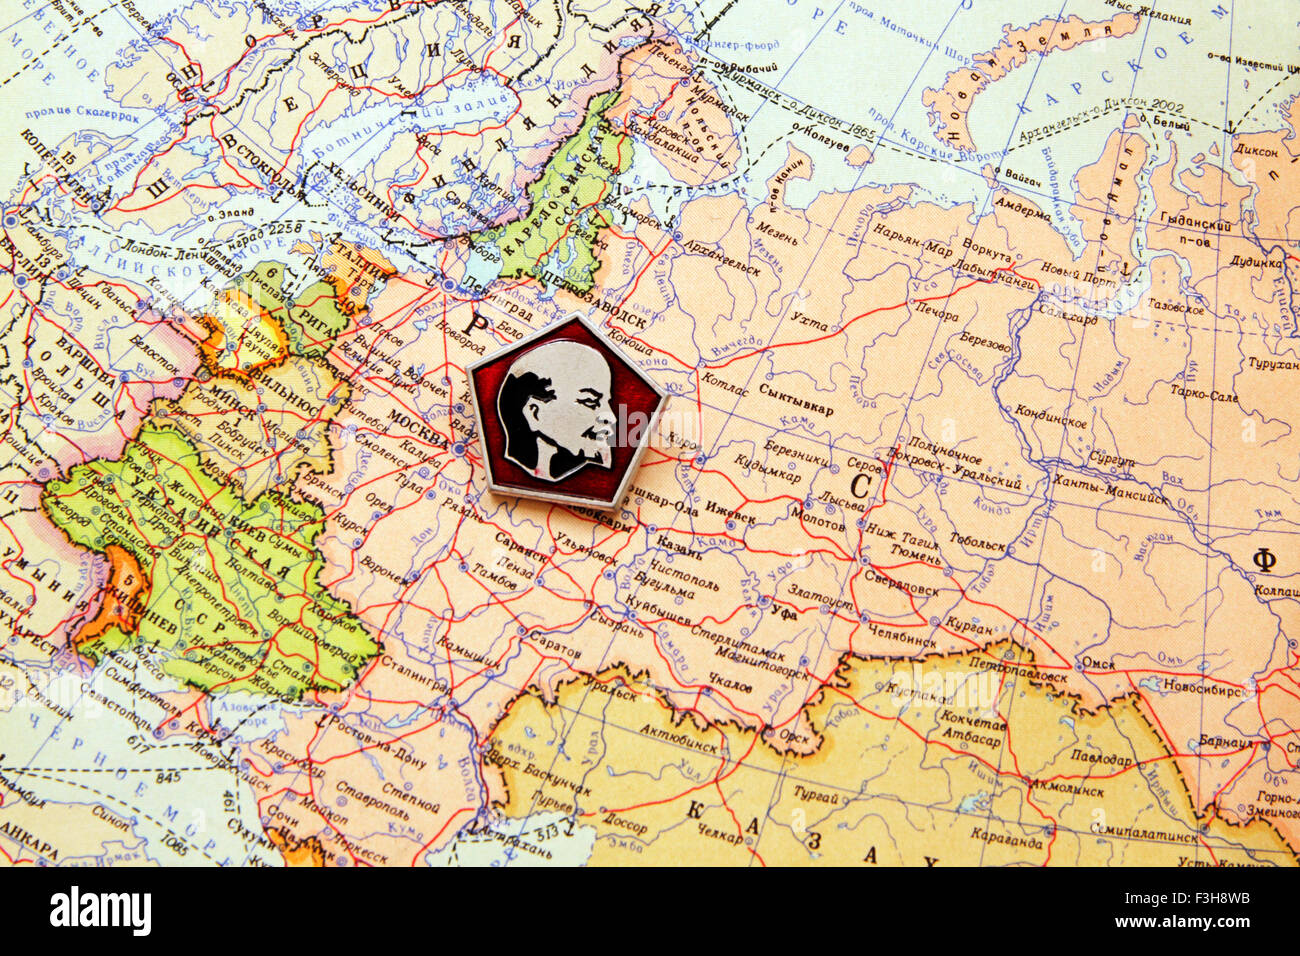 Lenin on the political map USSR 1953 Stock Photo Royalty Free